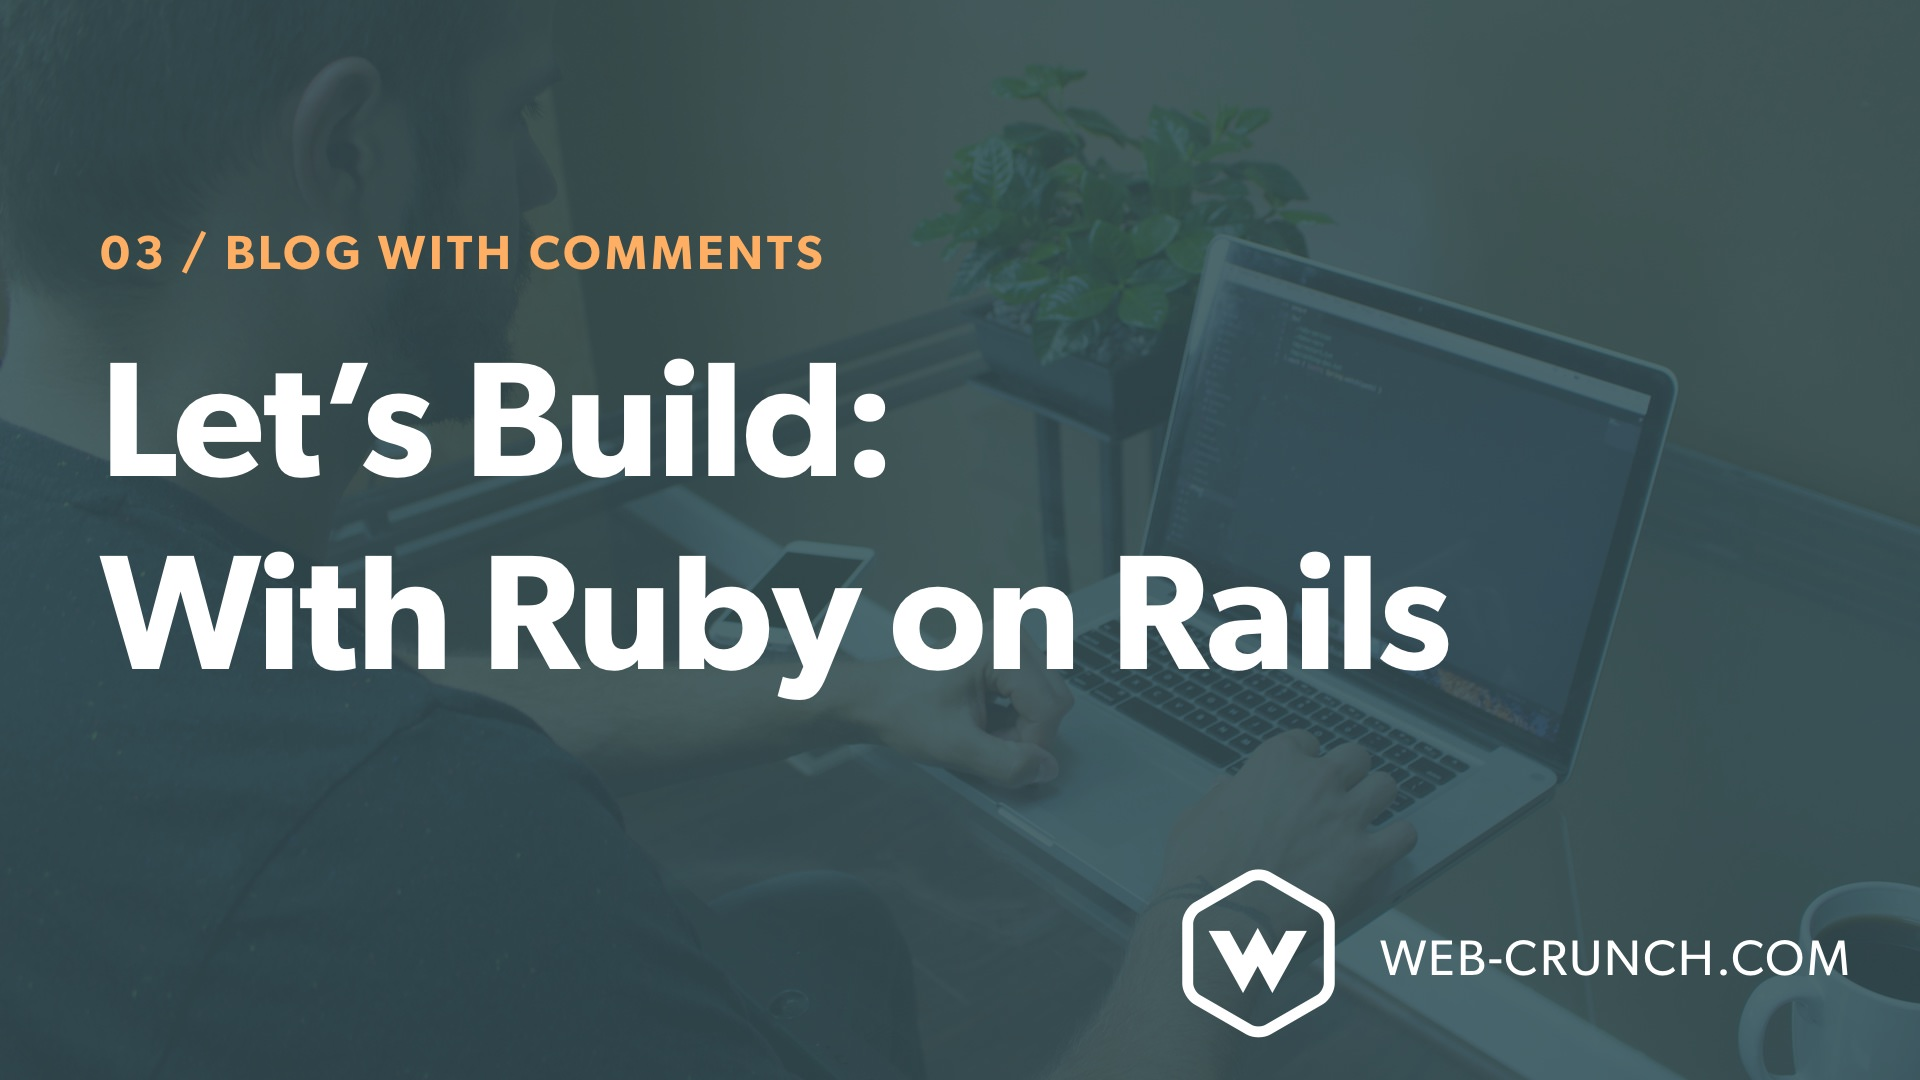 Let's Build: With Ruby on Rails - Blog with Comments